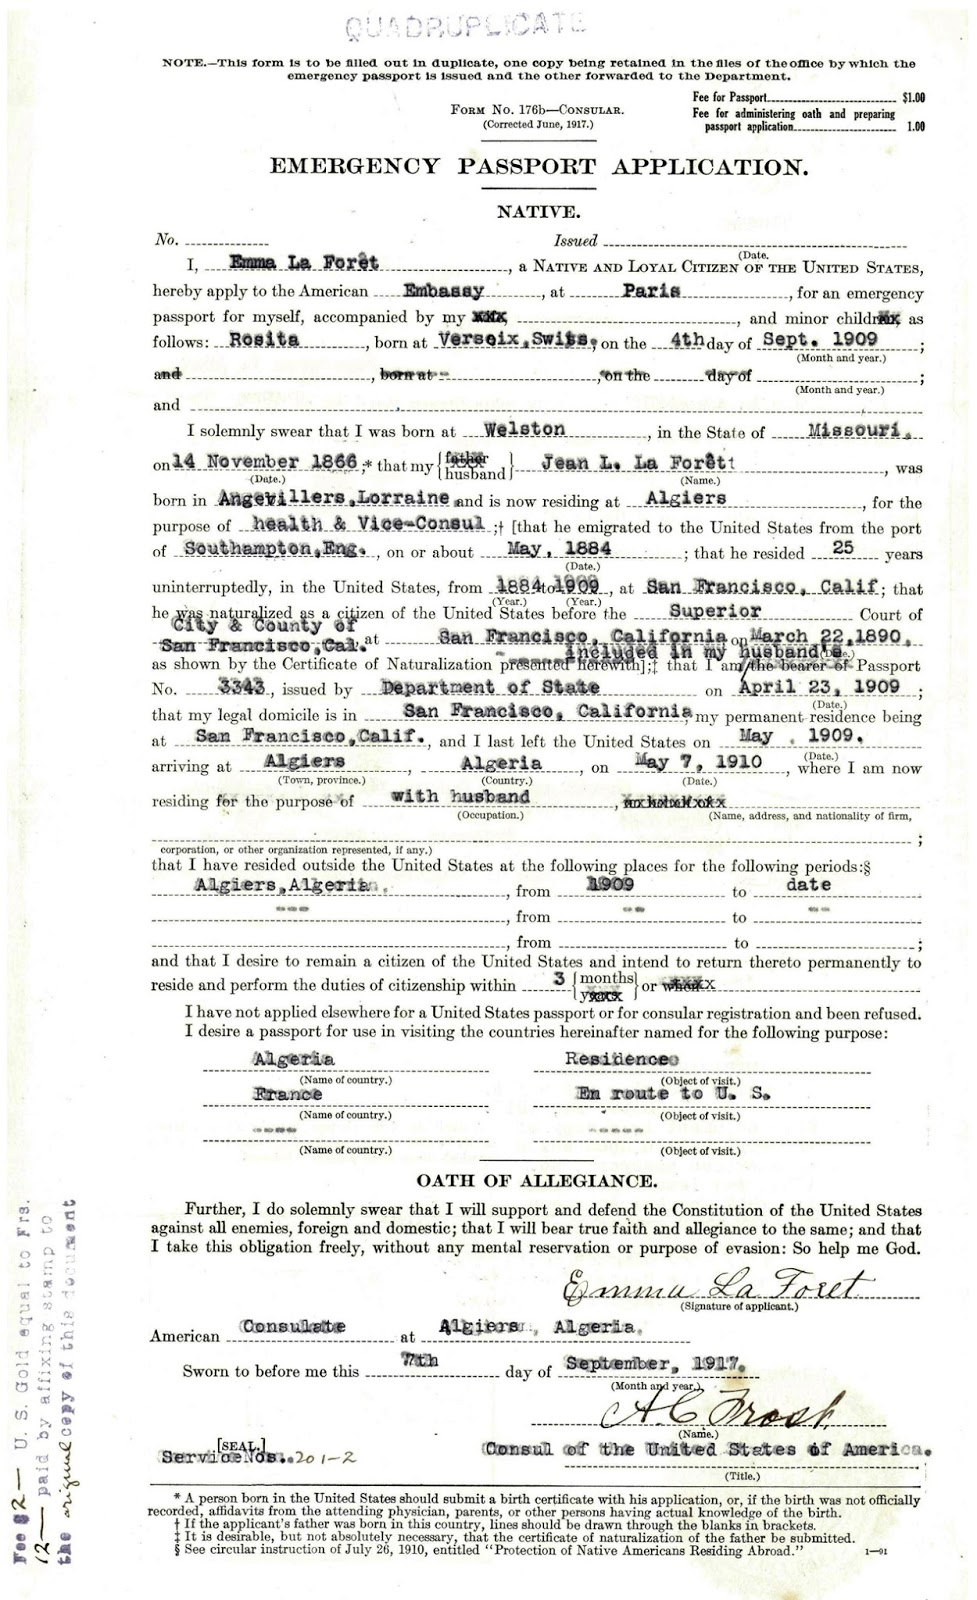 Ancestral discoveries february 2016 this weeks document in the life of emma schafer is a copy of her emergency passport application from 1917 this is an original marked quadruplicate aiddatafo Gallery